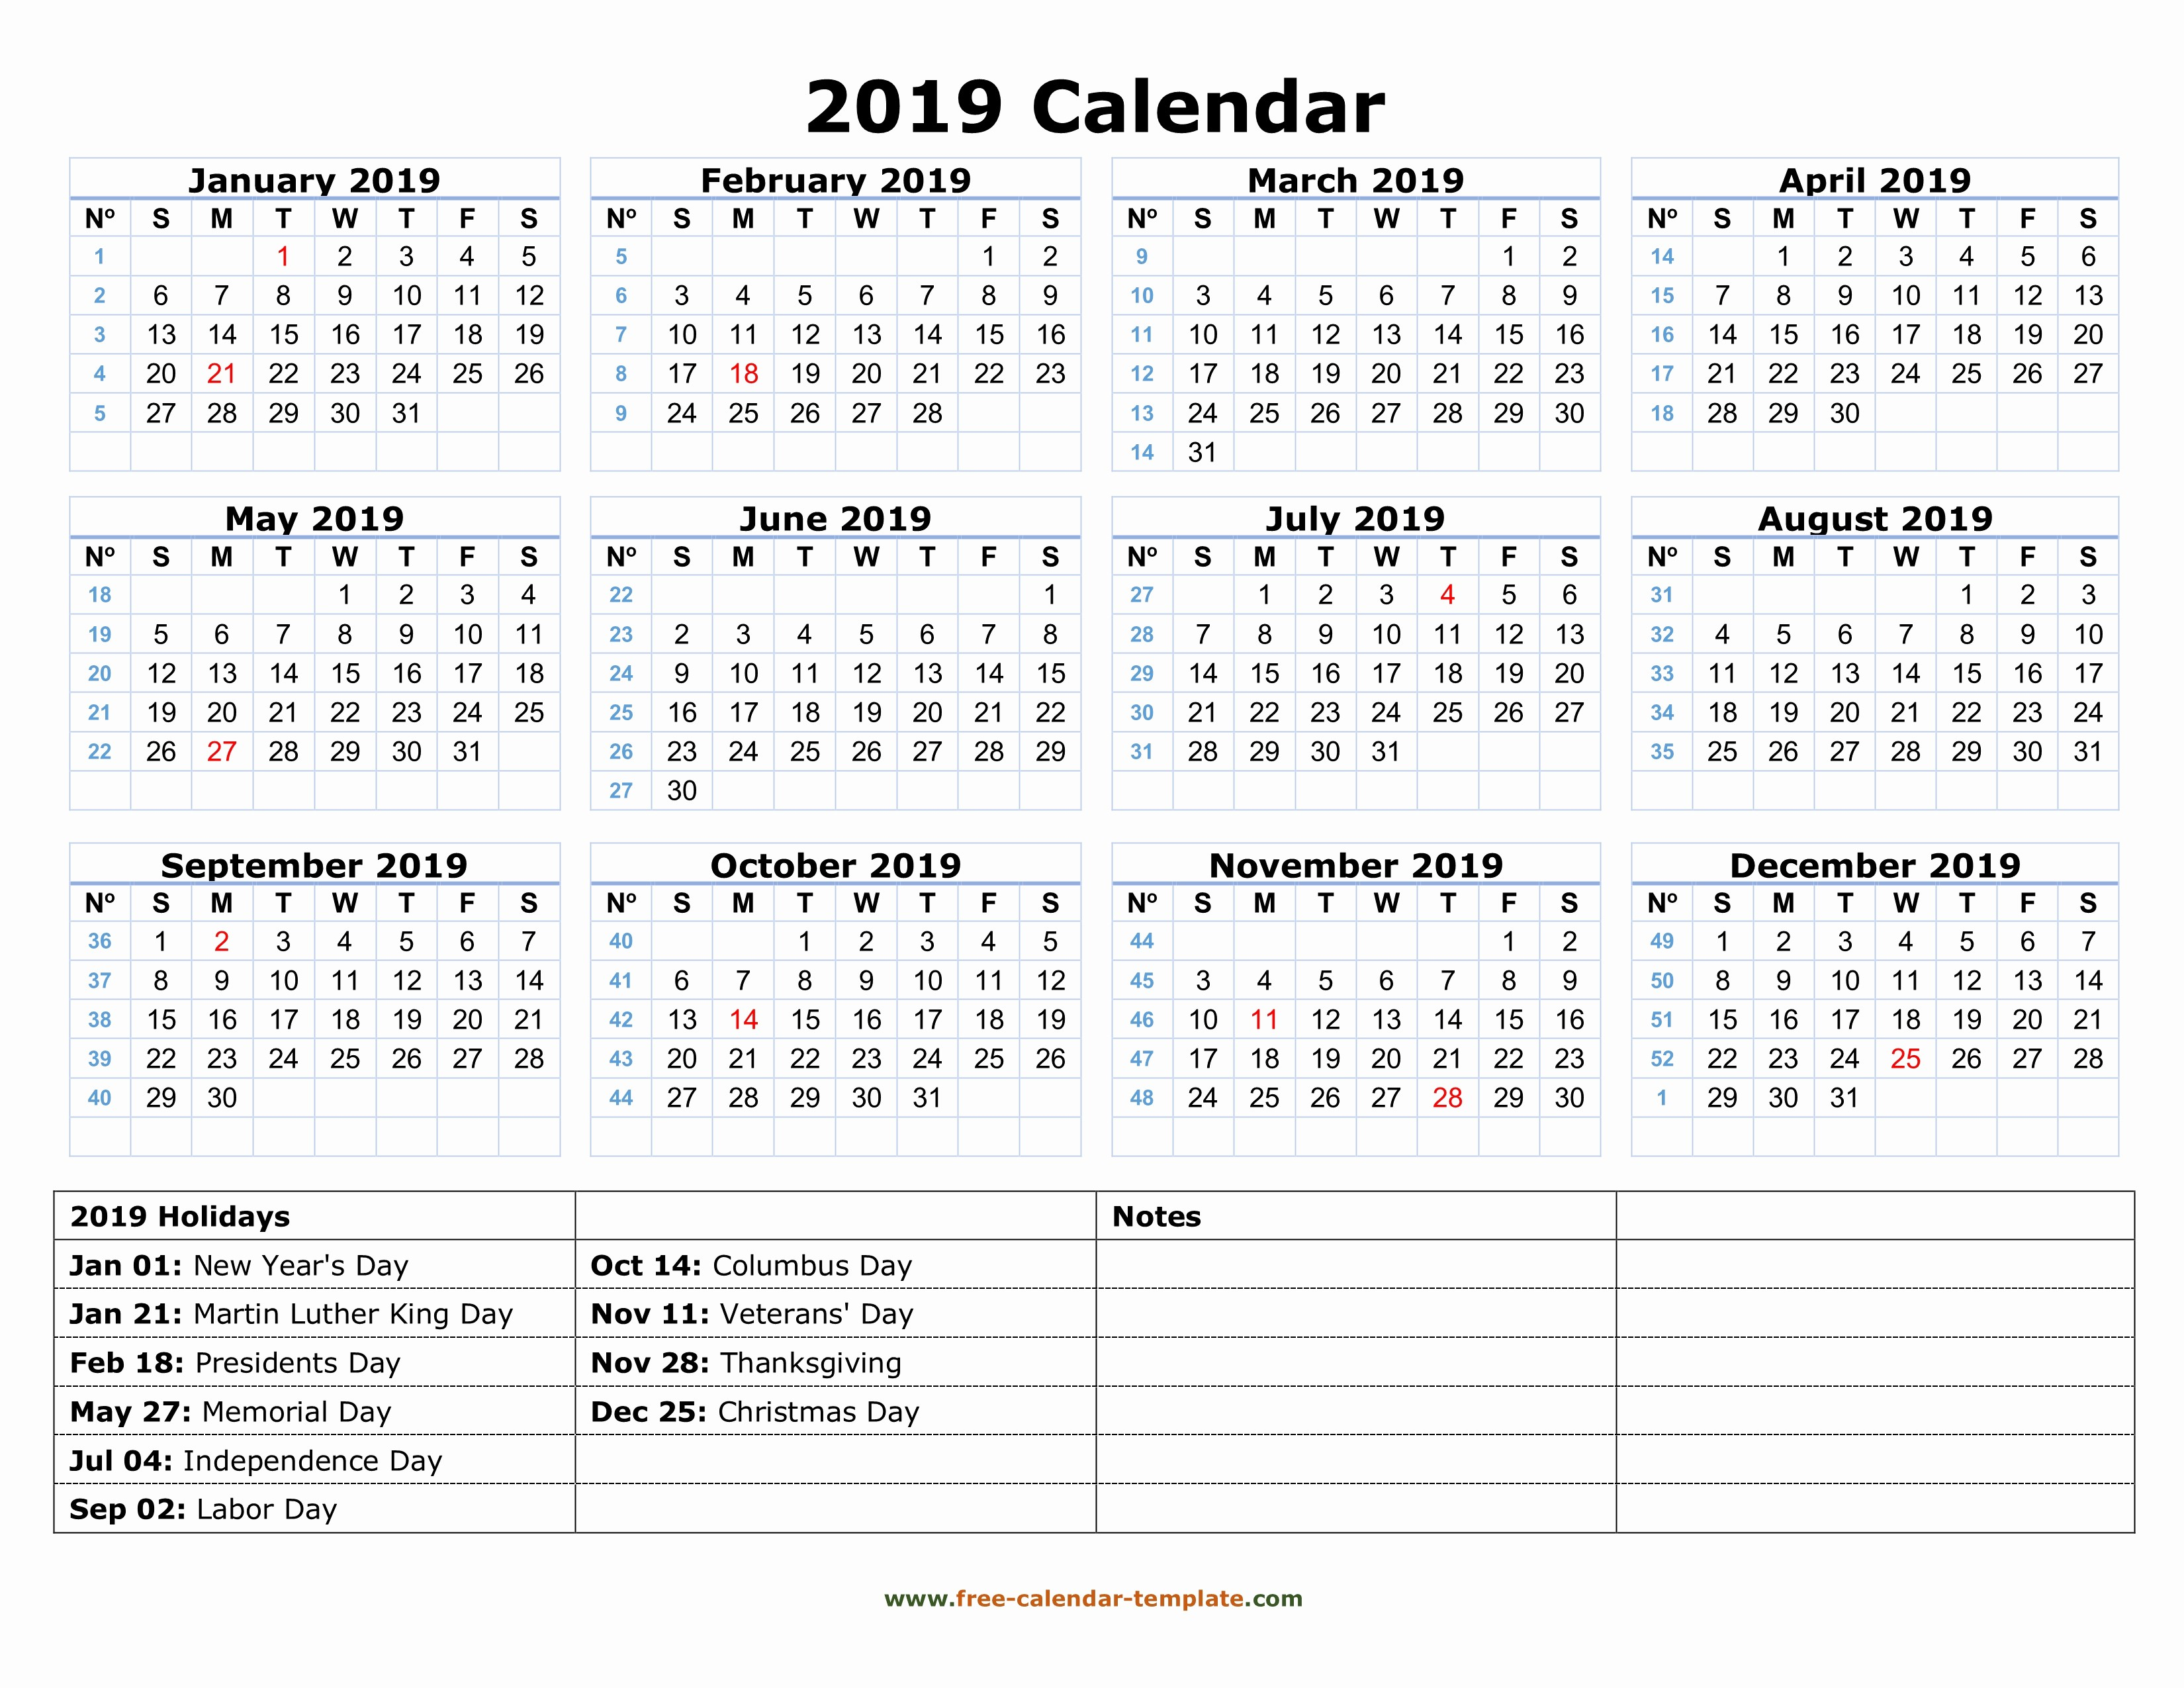 Free Printable Calendar Templates 2019 Elegant Printable Yearly Calendar 2019